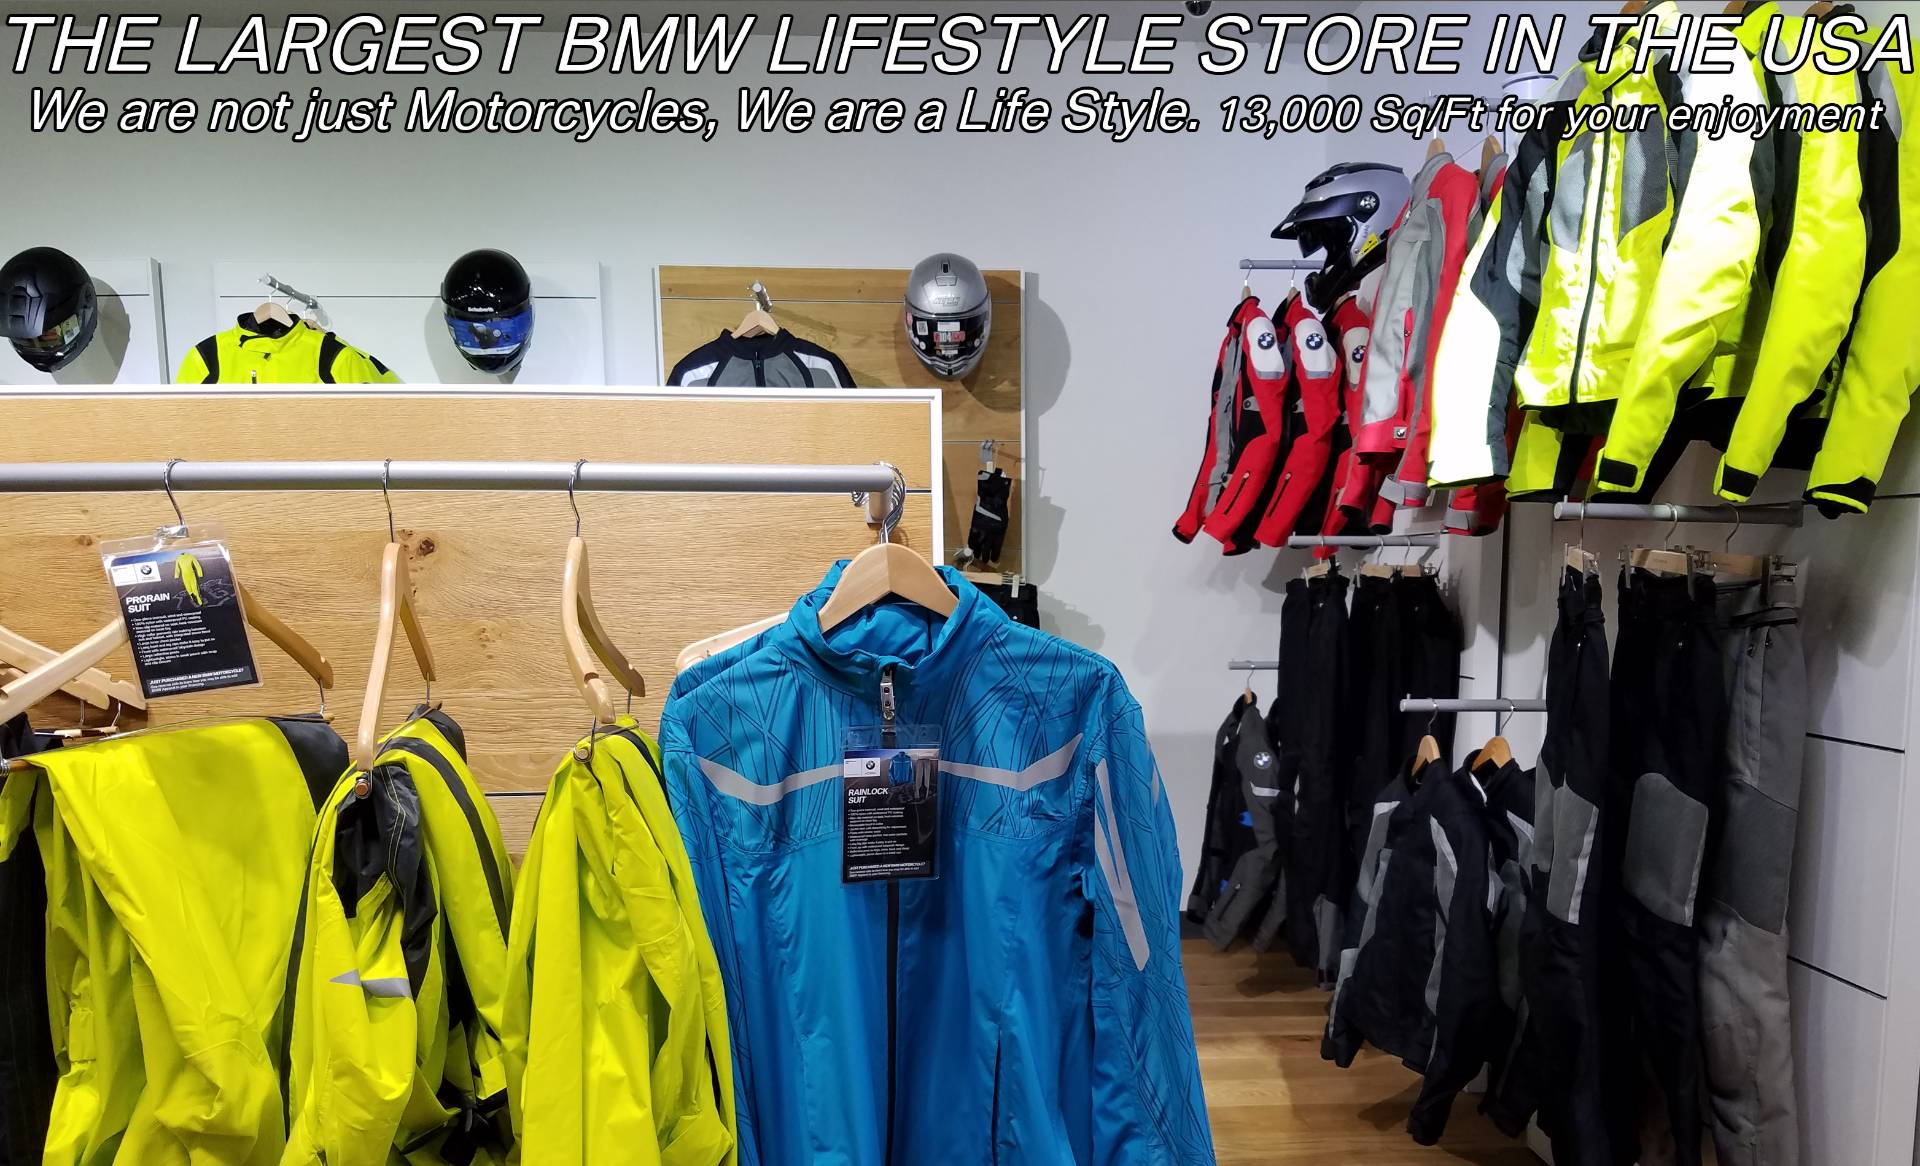 New 2019 BMW F 850 GSA for sale, BMW F 850GSA for sale, BMW Motorcycle F850GSA, new BMW 850 Adventure, Adventure. BMW Motorcycles of Miami, Motorcycles of Miami, Motorcycles Miami, New Motorcycles, Used Motorcycles, pre-owned. #BMWMotorcyclesOfMiami #MotorcyclesOfMiami #MotorcyclesMiami - Photo 46